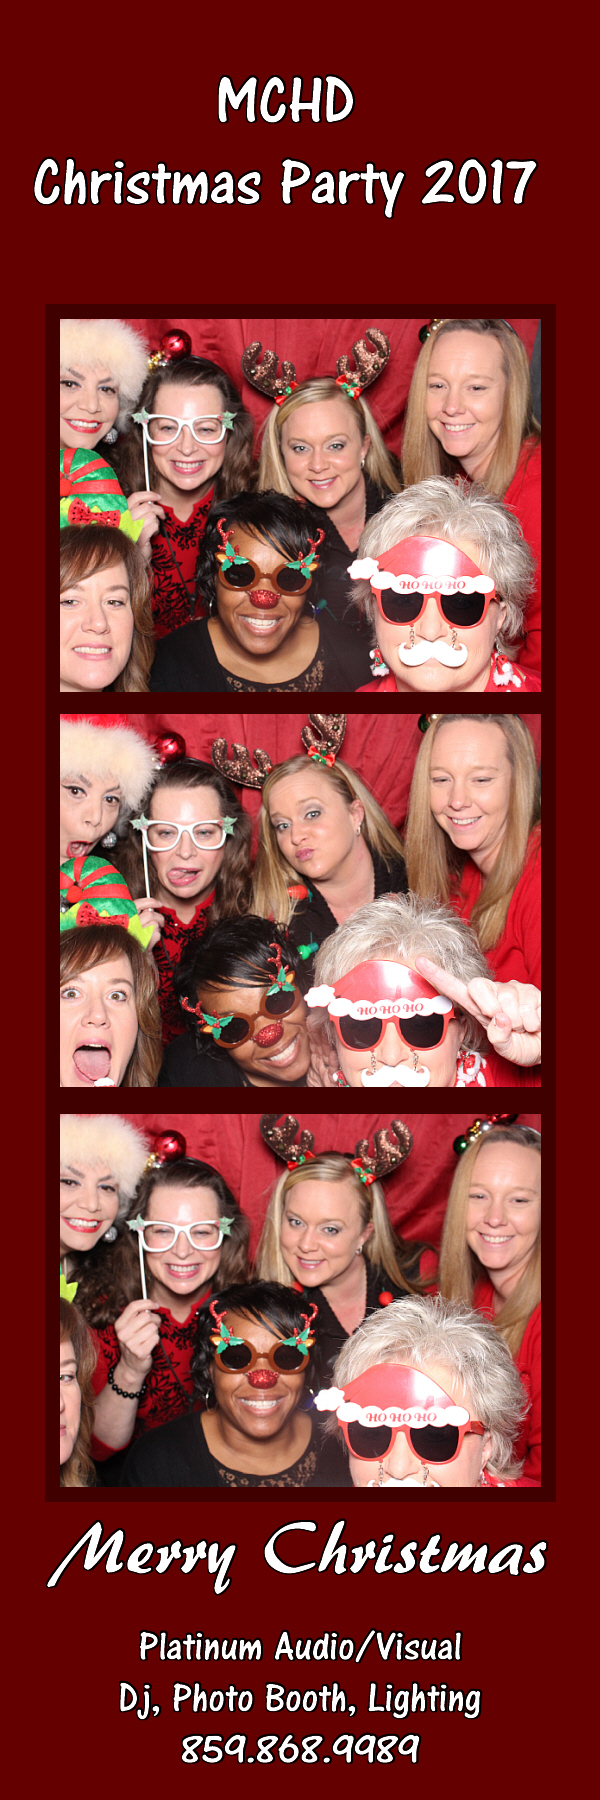 Madison County Health Department Christmas Party 2017